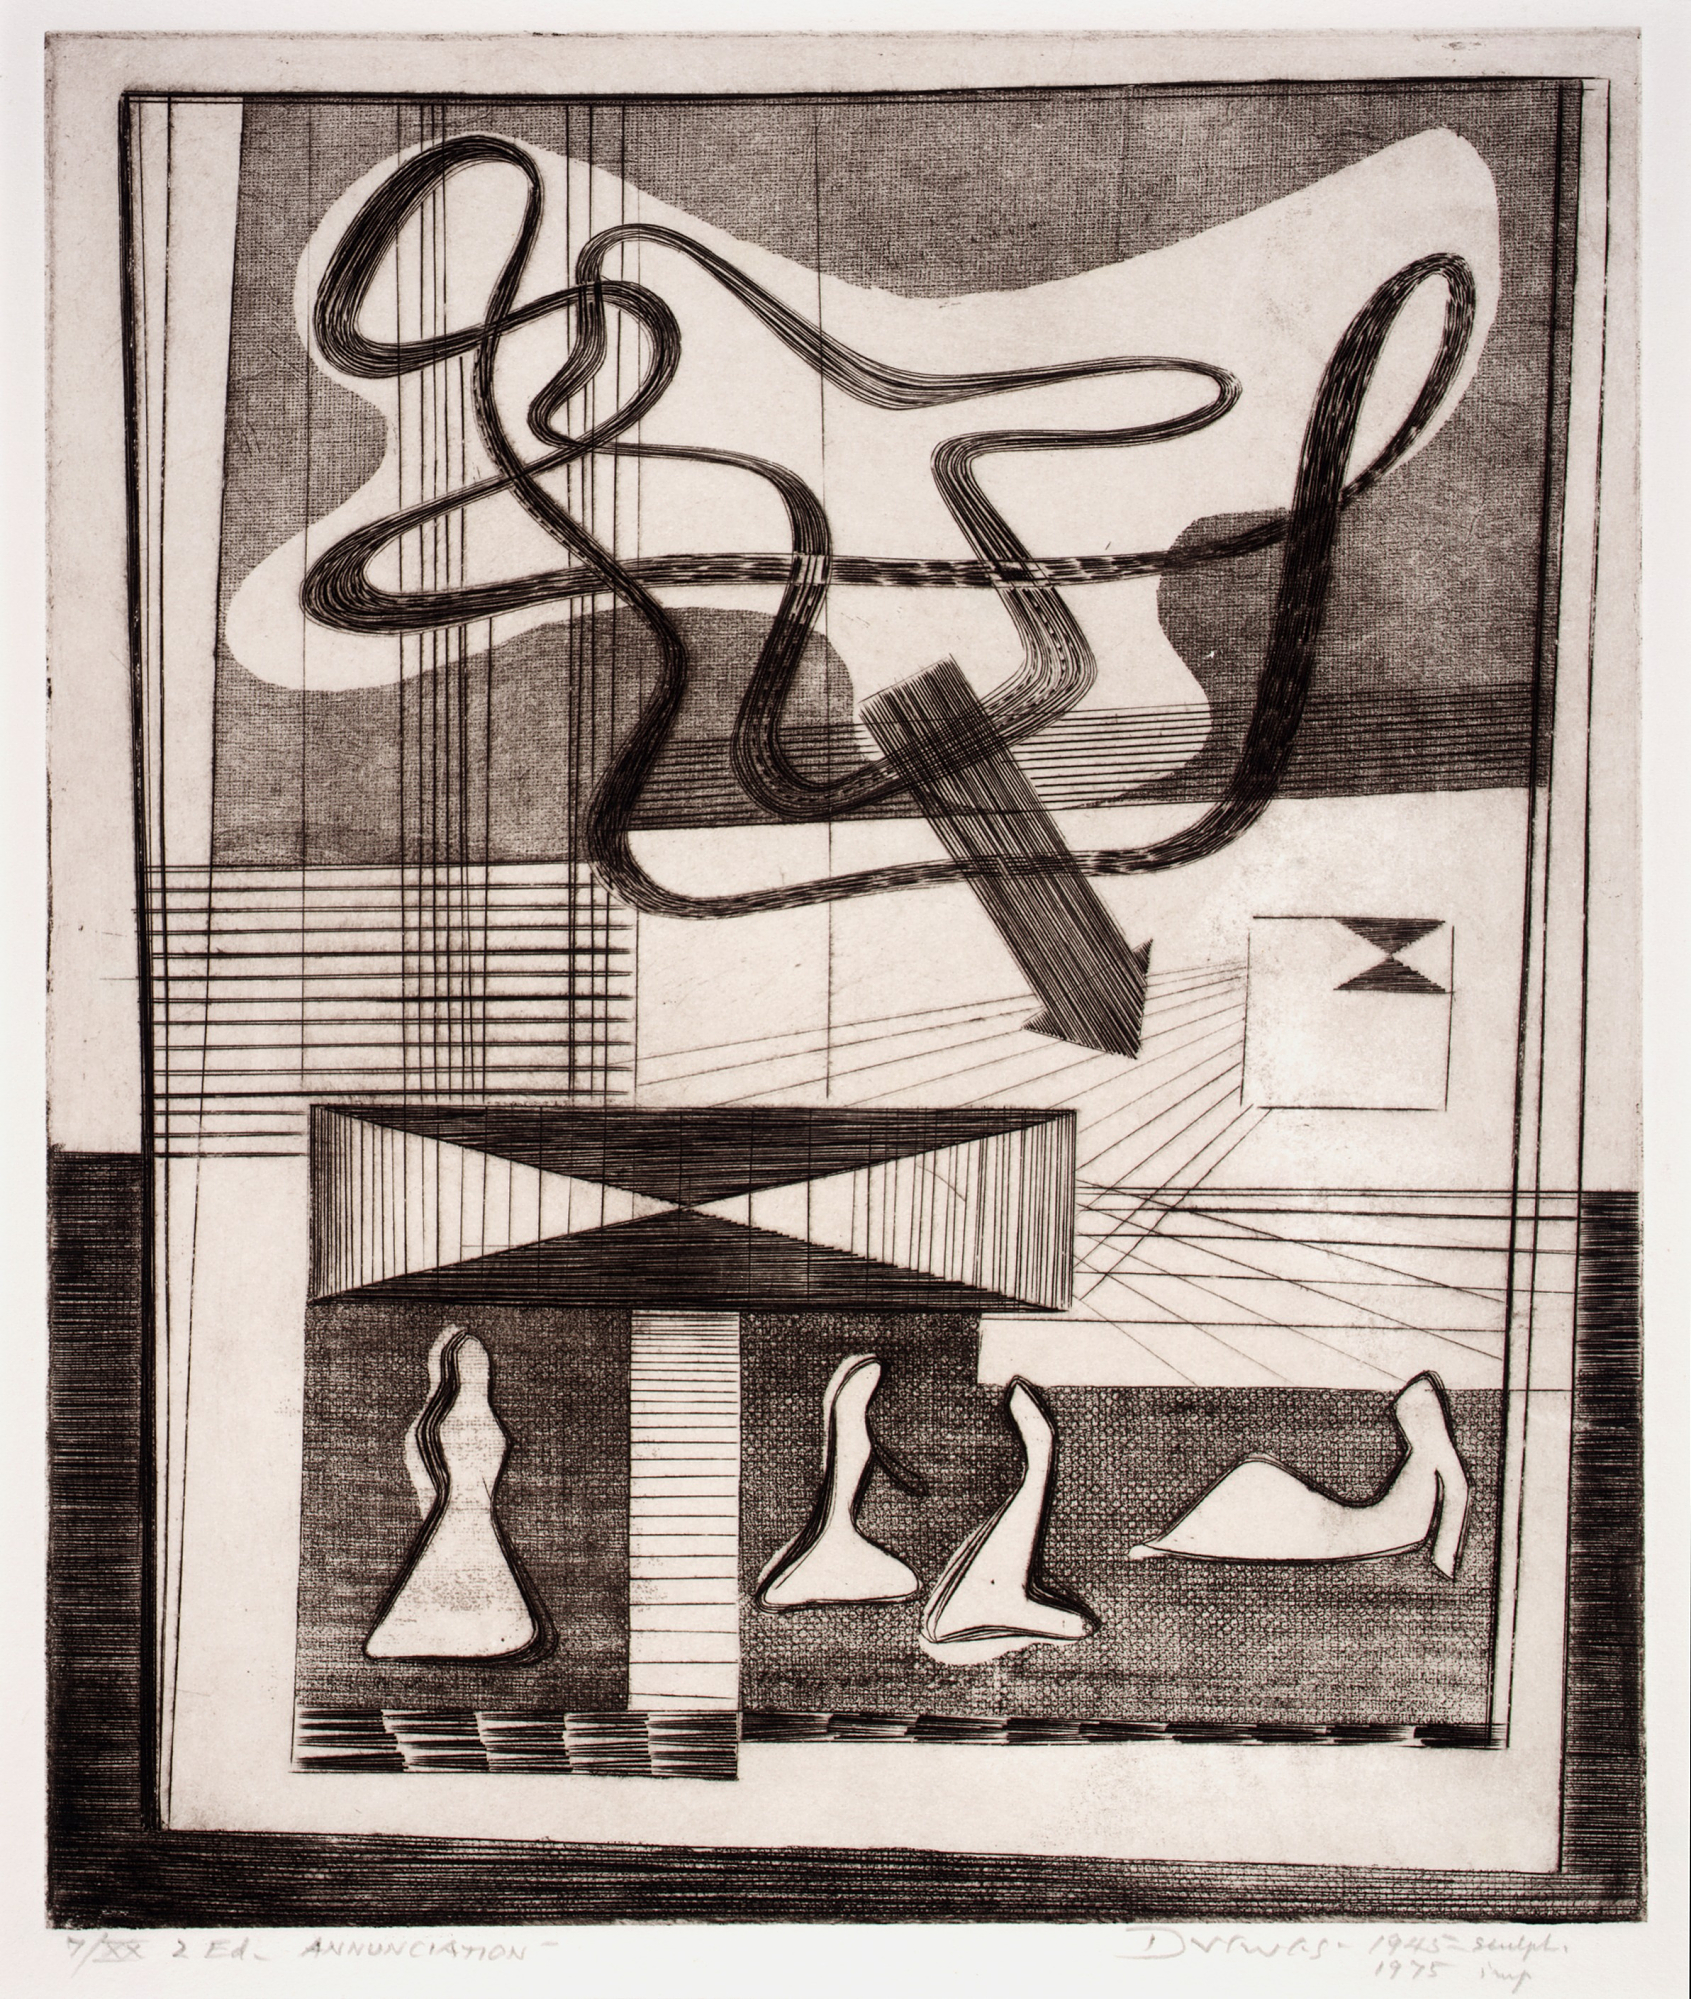 Werner Drewes, Annunciation, 1944, printed 1975, engraving and softground etching on paper, Smithsonian American Art Museum, Gift of the artist, 1976.74.17